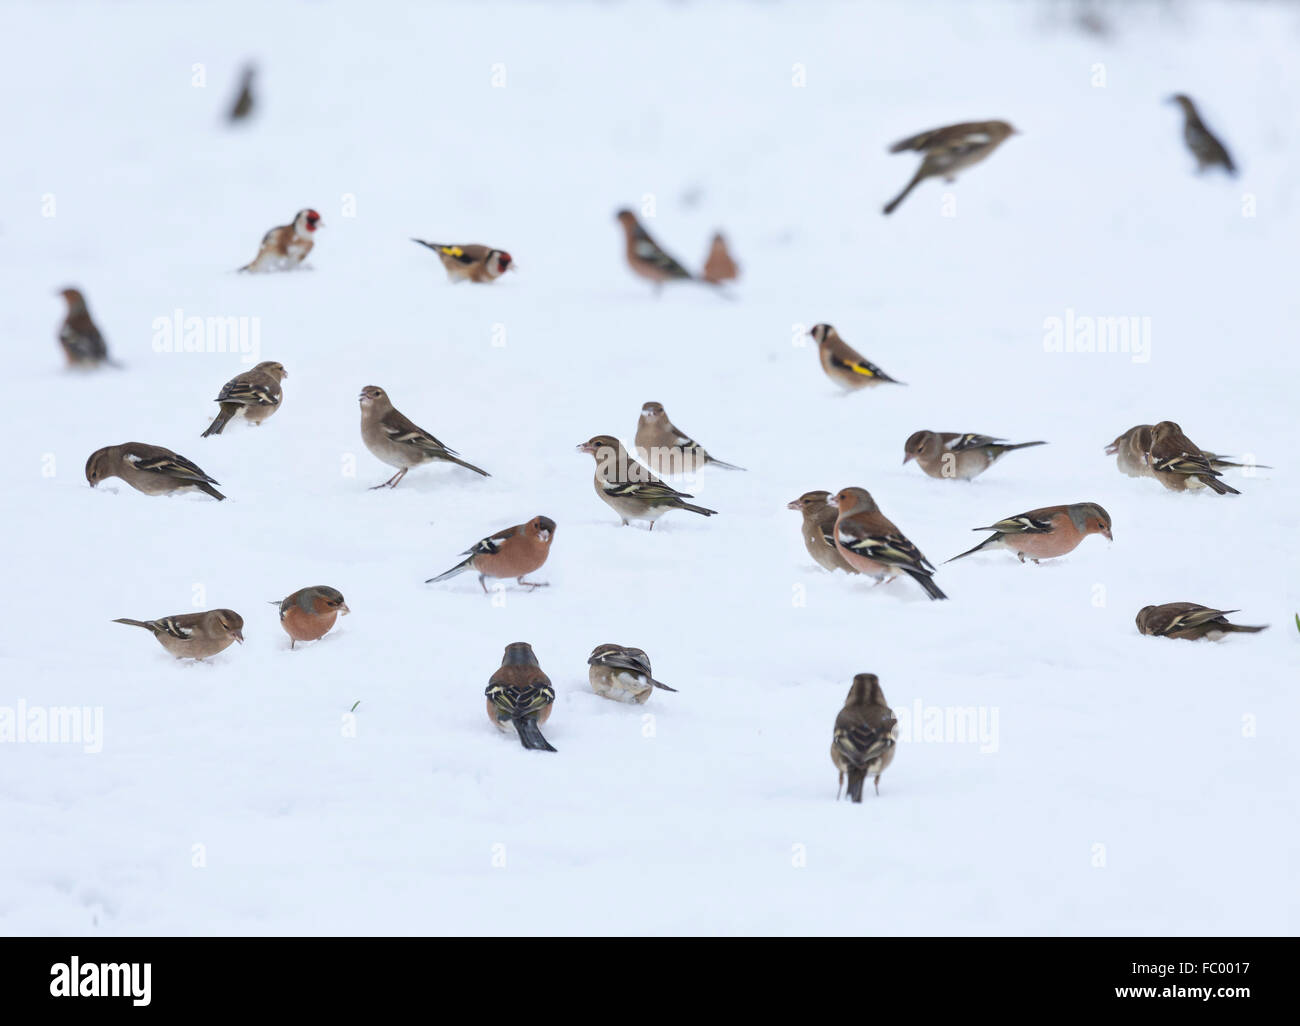 Flock of finches, mainly Chaffinches with a few Goldfinches, looking for food on thick snow in winter. Scotland, - Stock Image